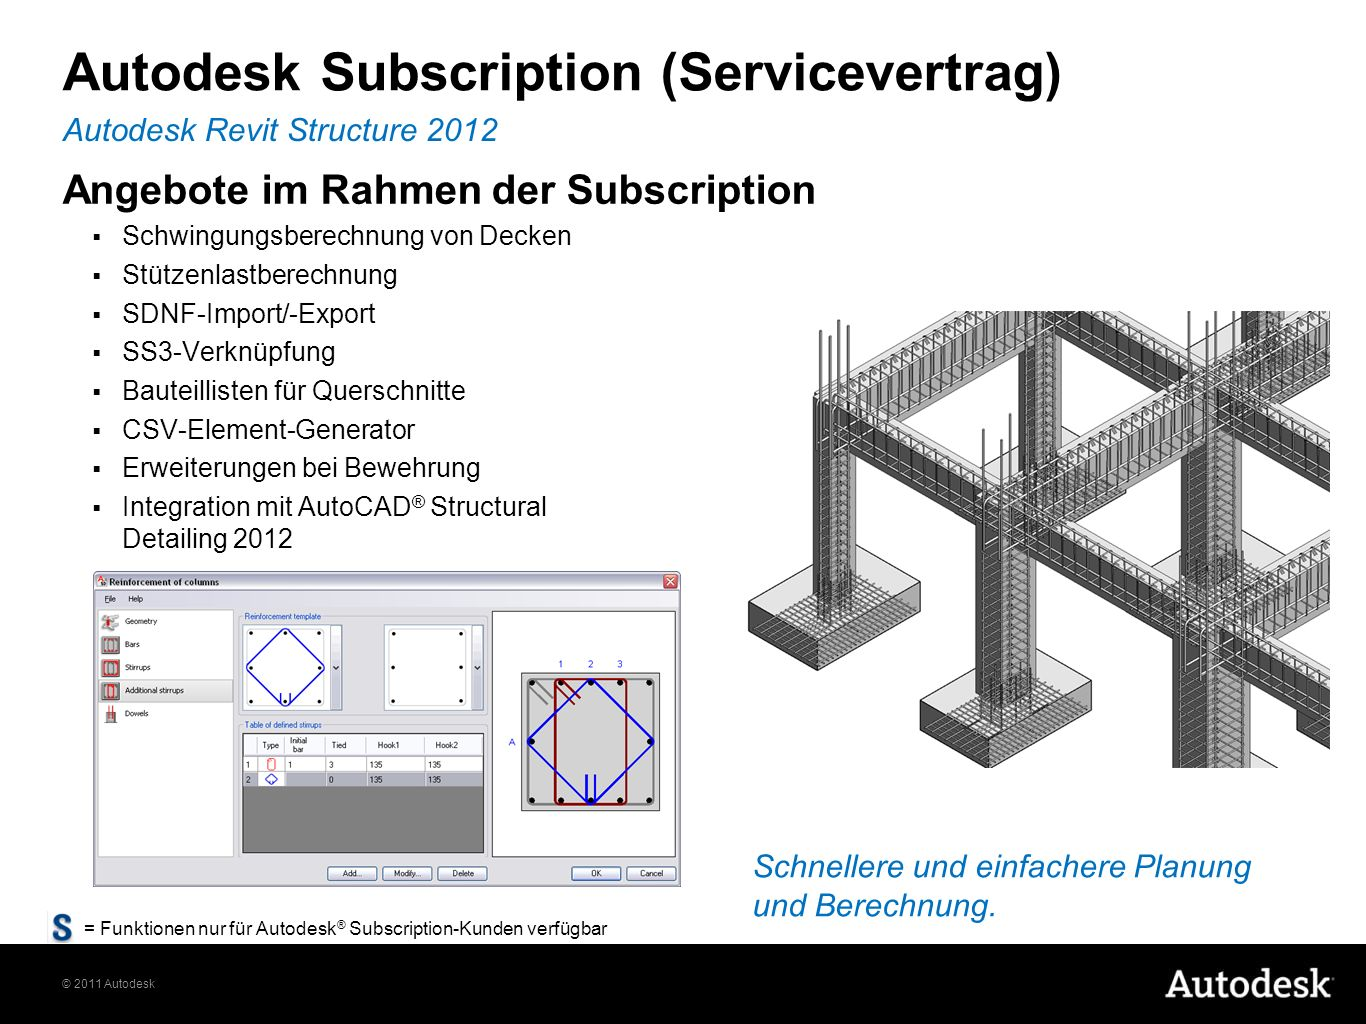 © 2011 Autodesk Autodesk Subscription (Servicevertrag) Angebote im Rahmen der Subscription Schwingungsberechnung von Decken Stützenlastberechnung SDNF